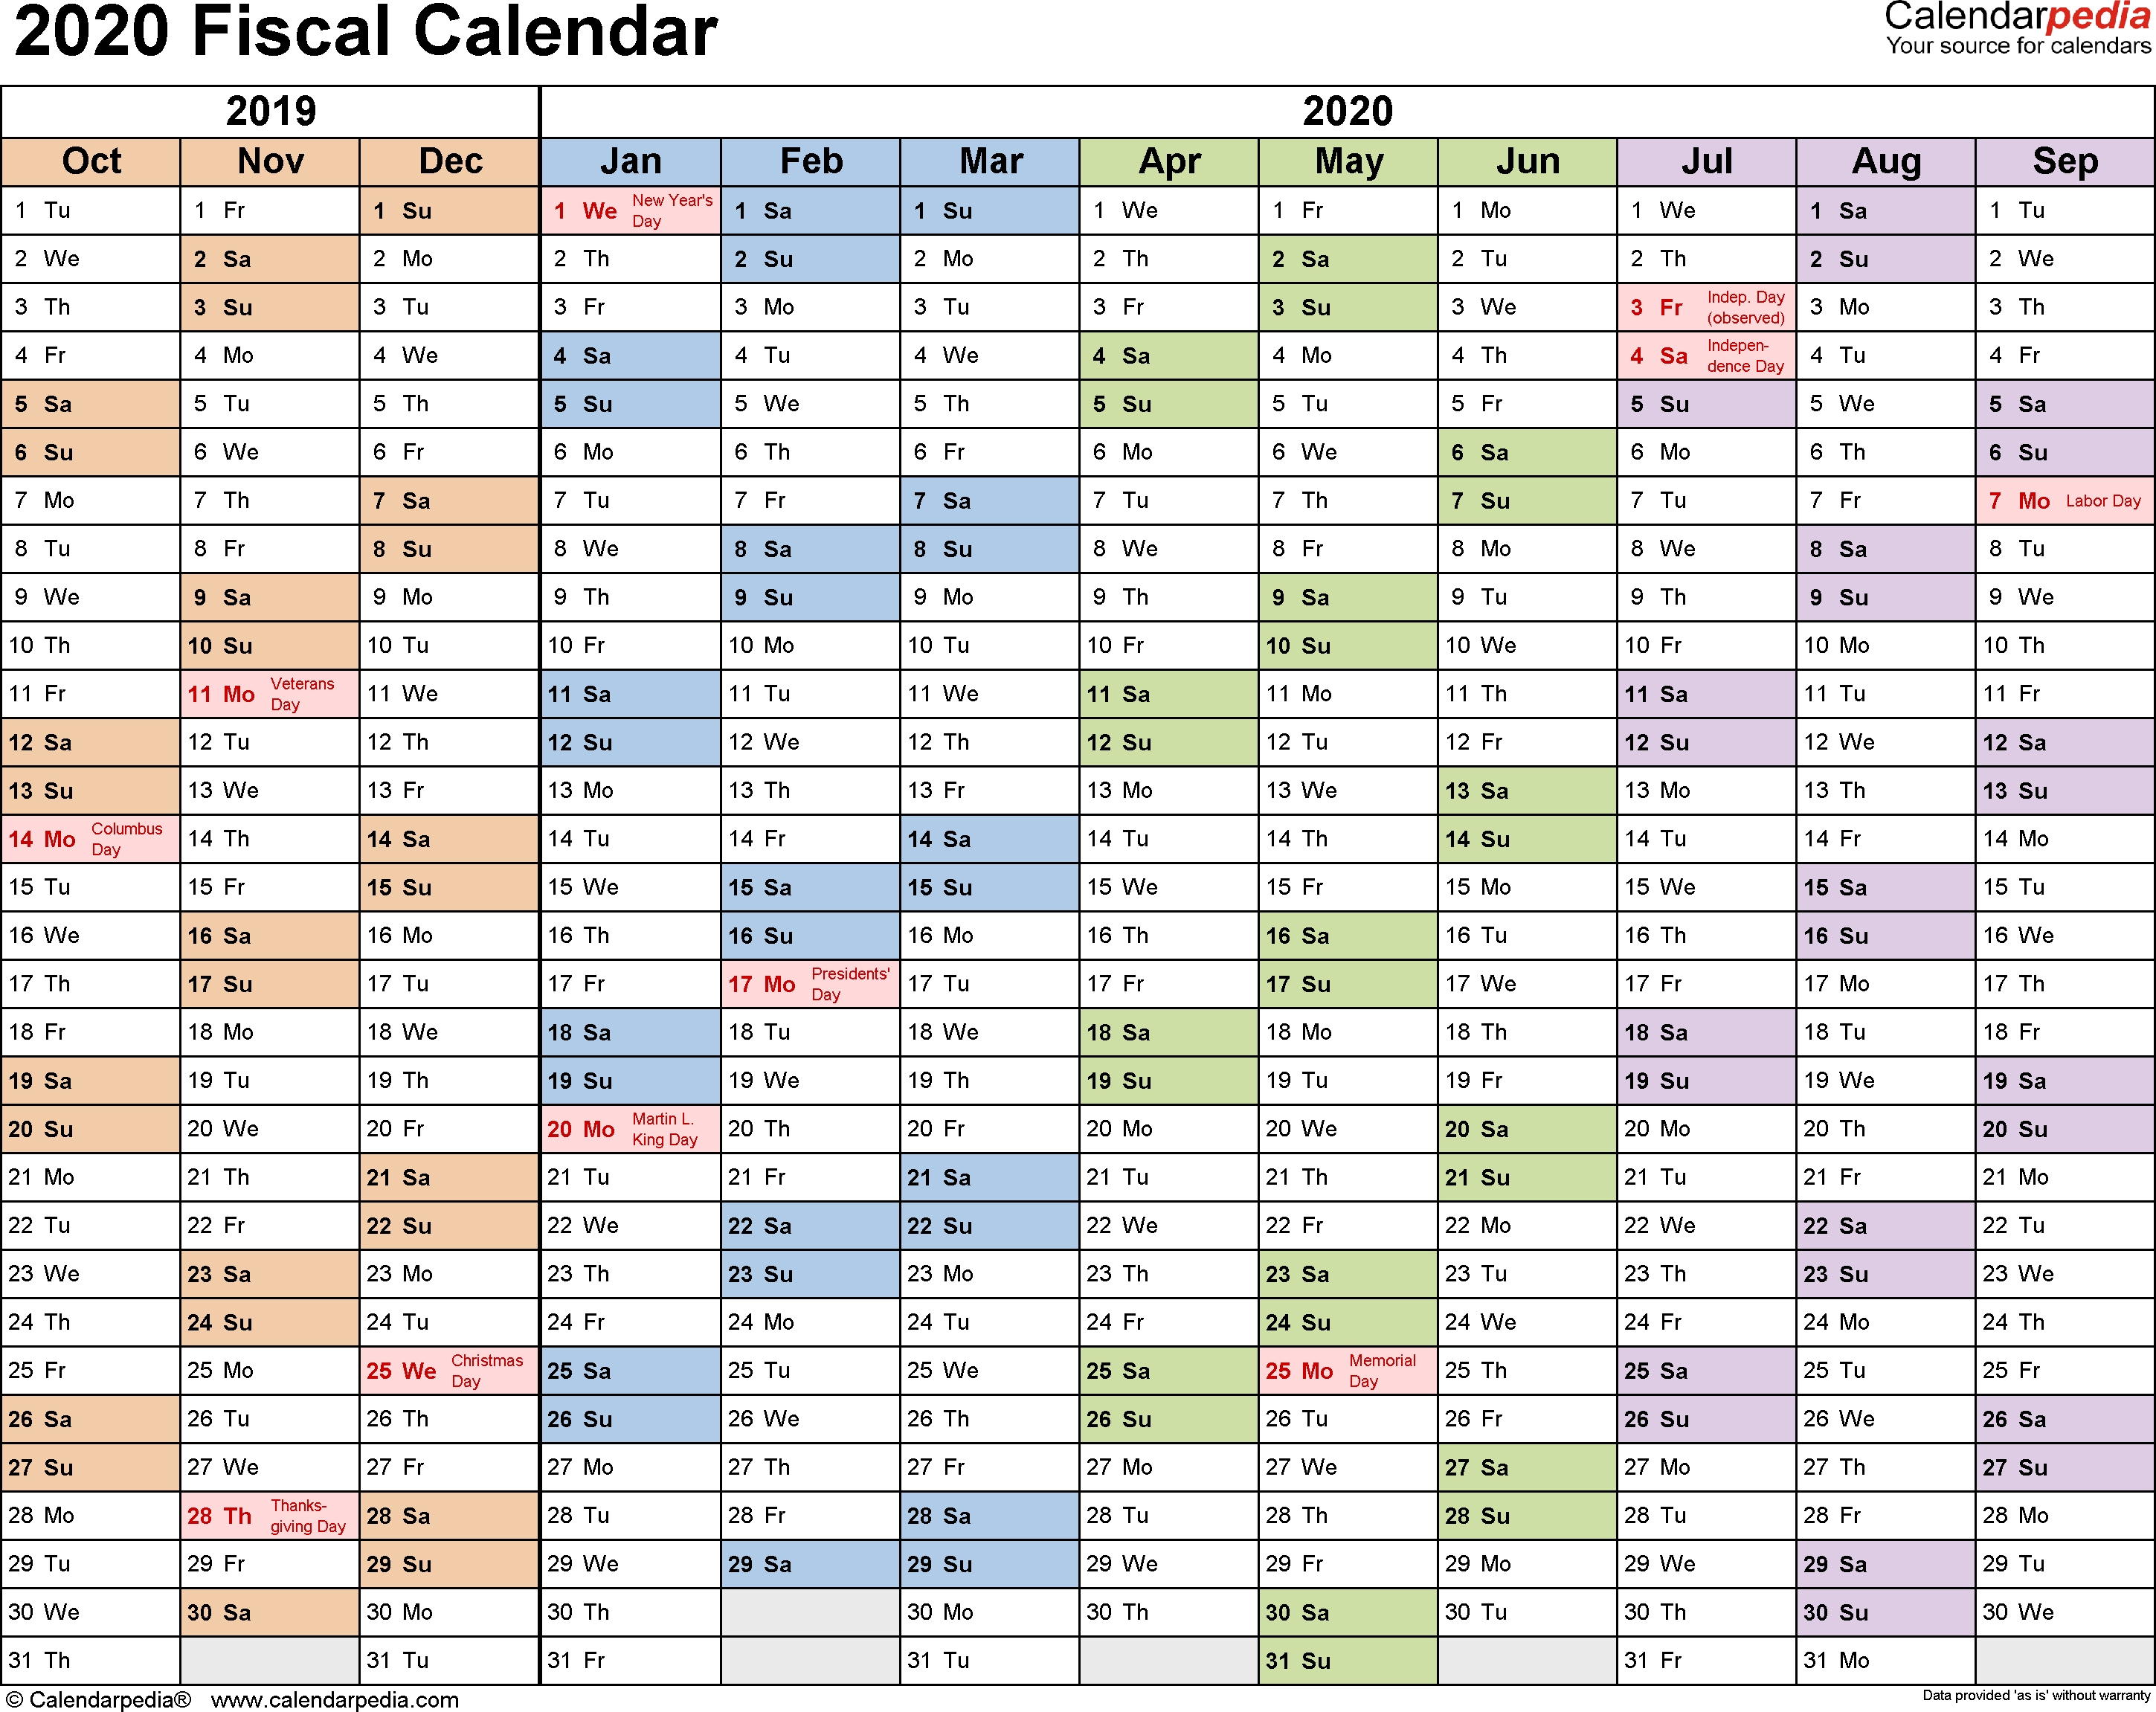 Fiscal Calendars 2020 As Free Printable Pdf Templates-Bi Weekly Pay Schedule 2020 Template